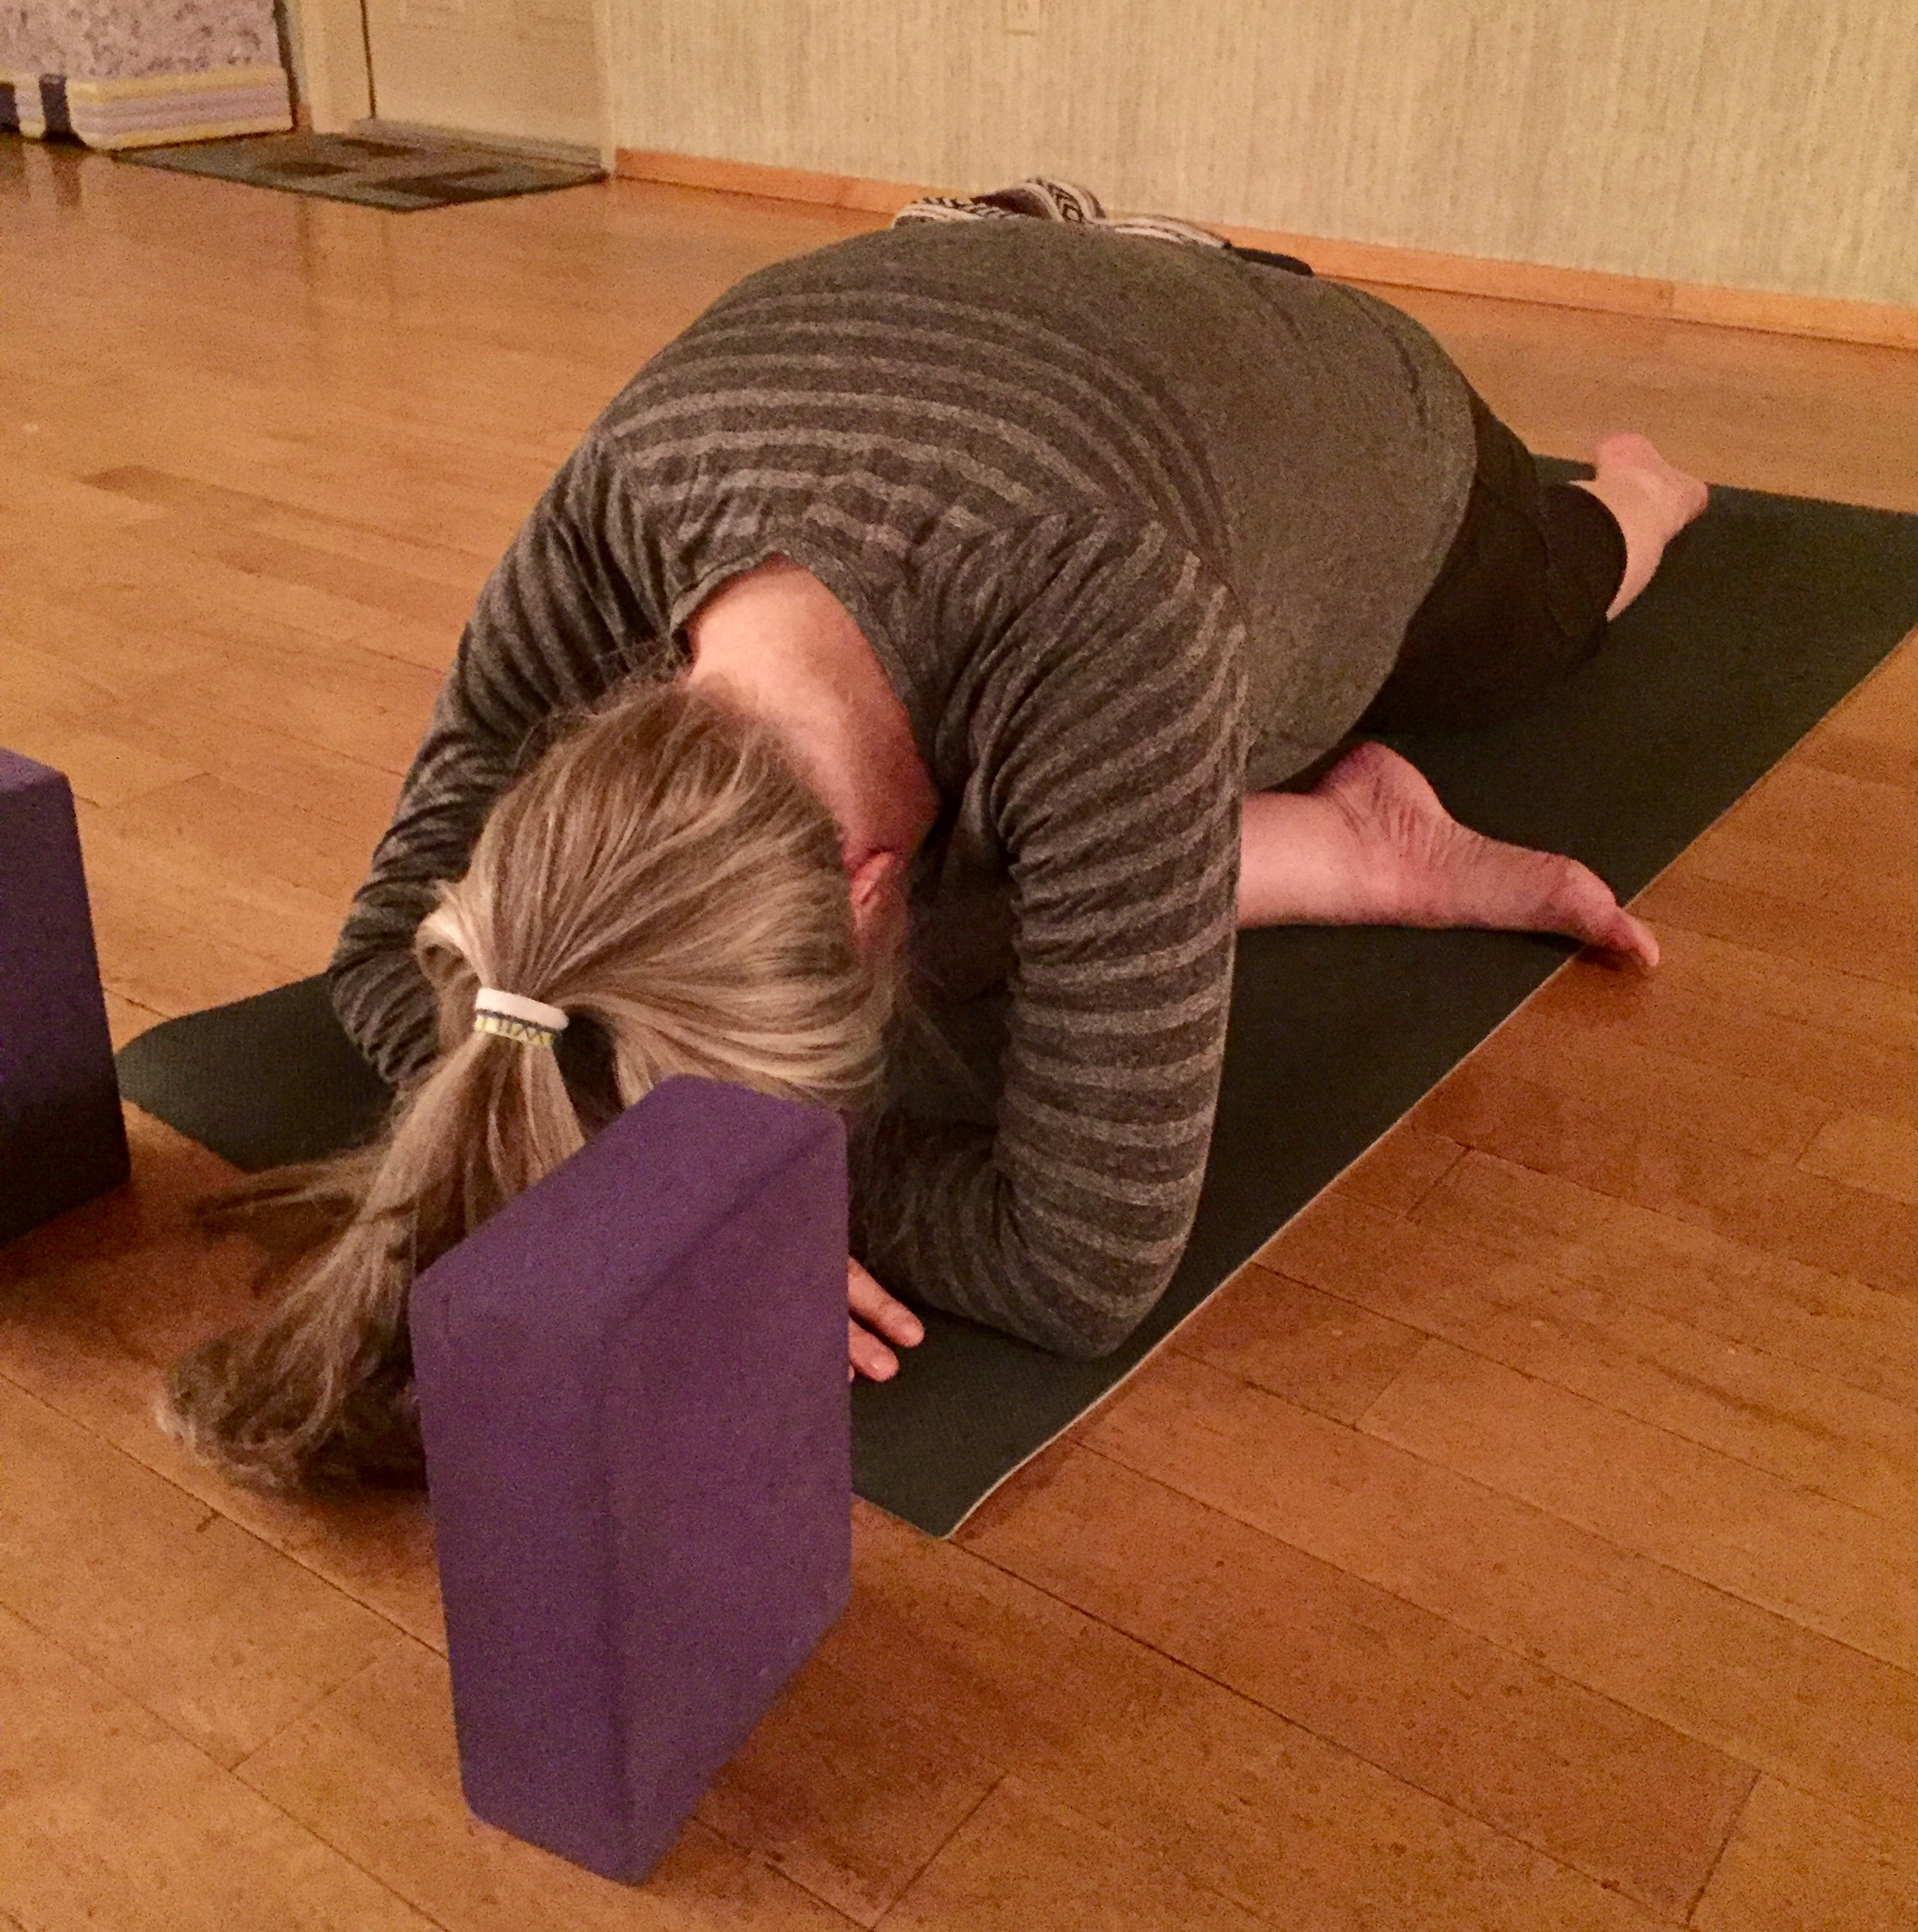 Stretching in Yoga Pigeon Pose to increase flexibility in knees and hips.